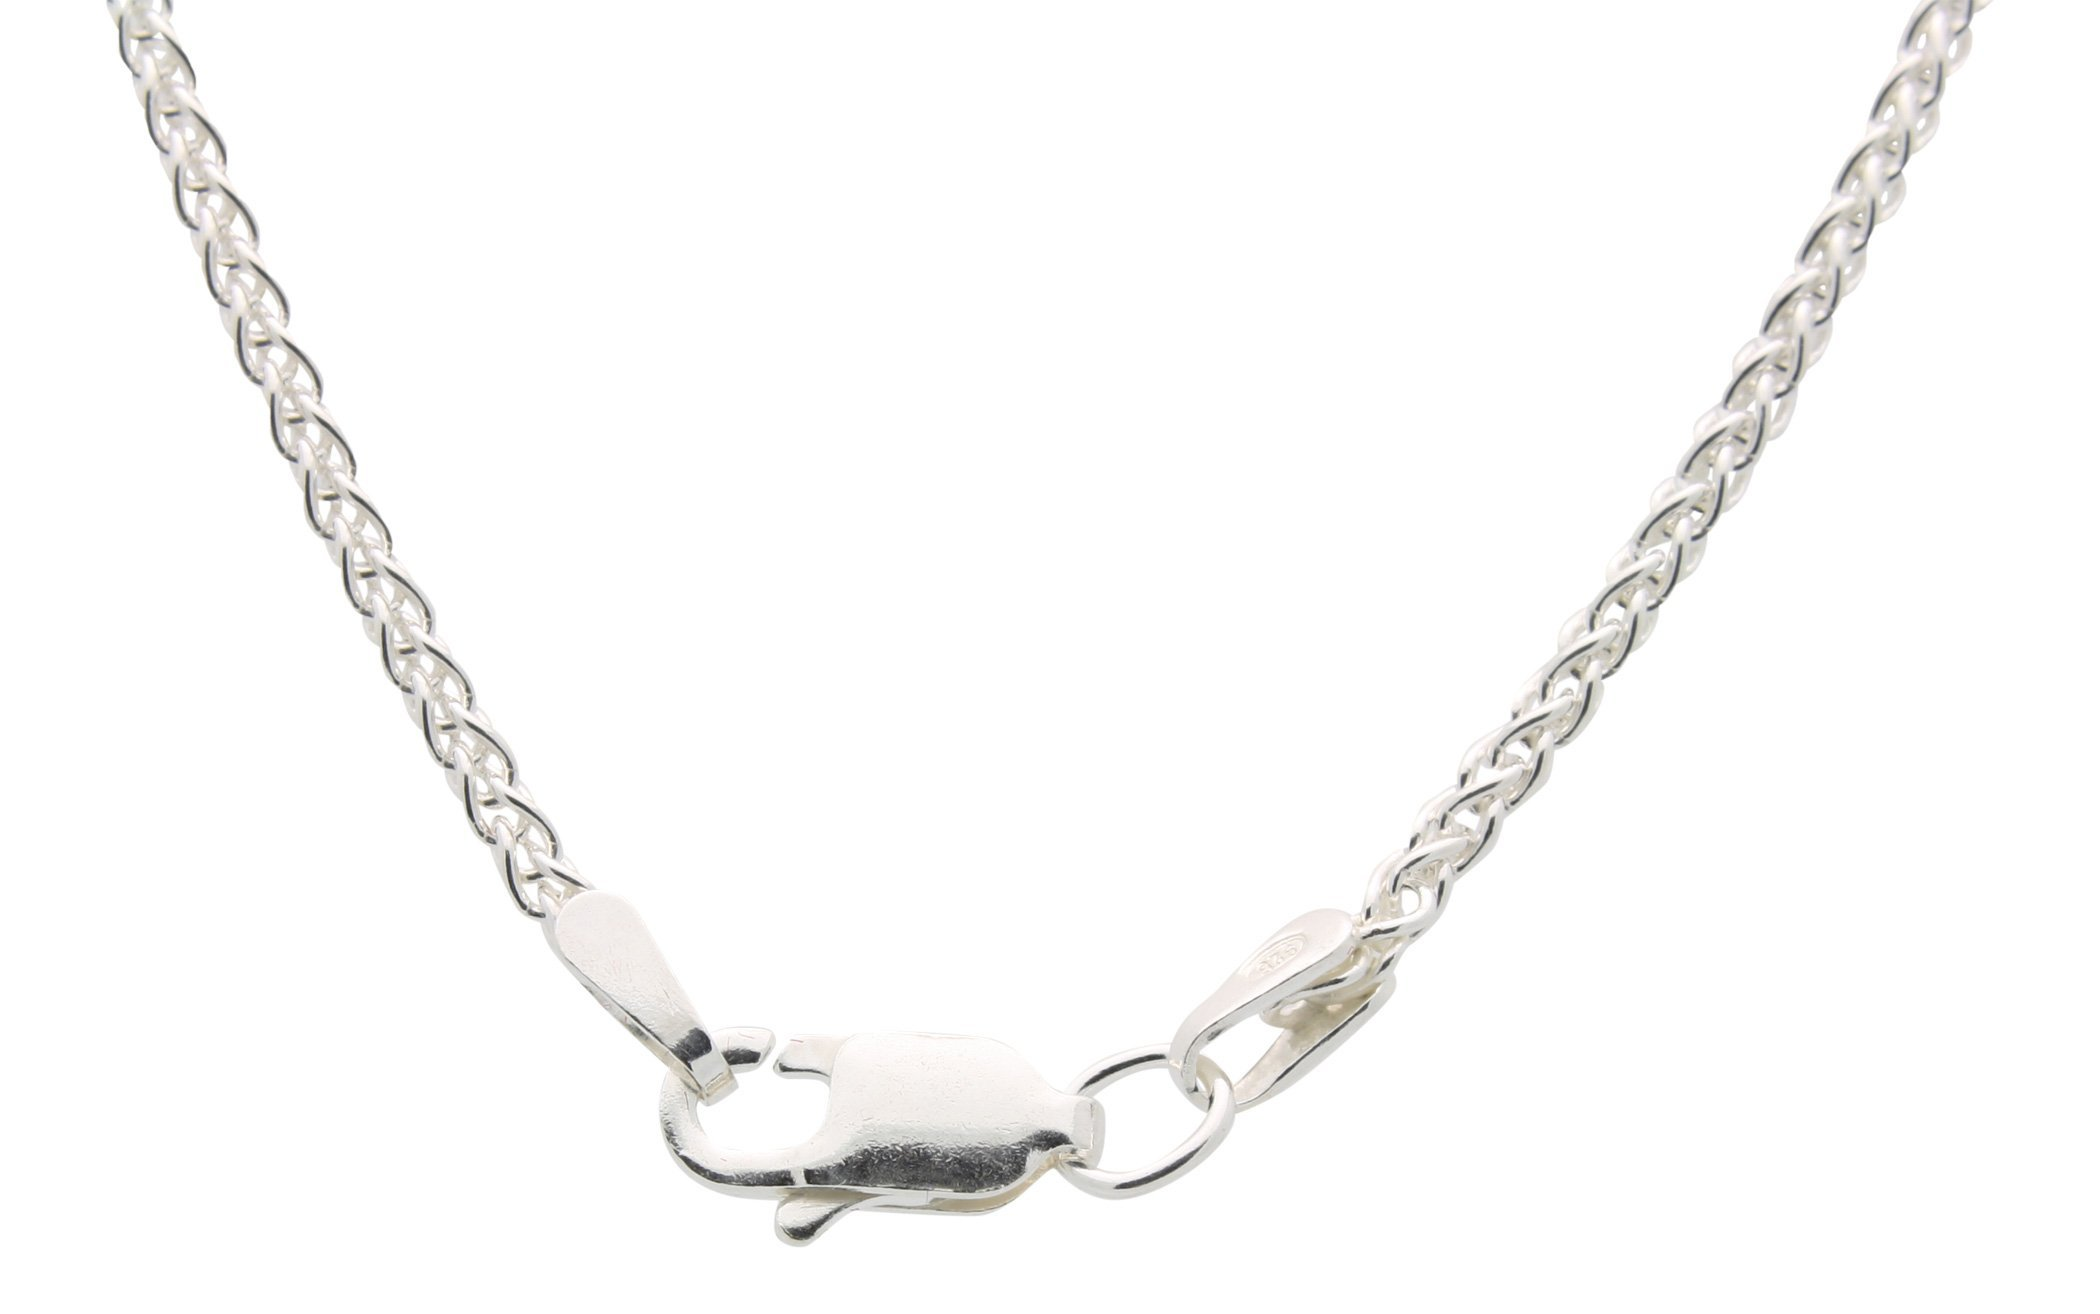 Diamond Heart Cross Necklace for Women - 925 Sterling Silver by All Patron Saints (Image #4)